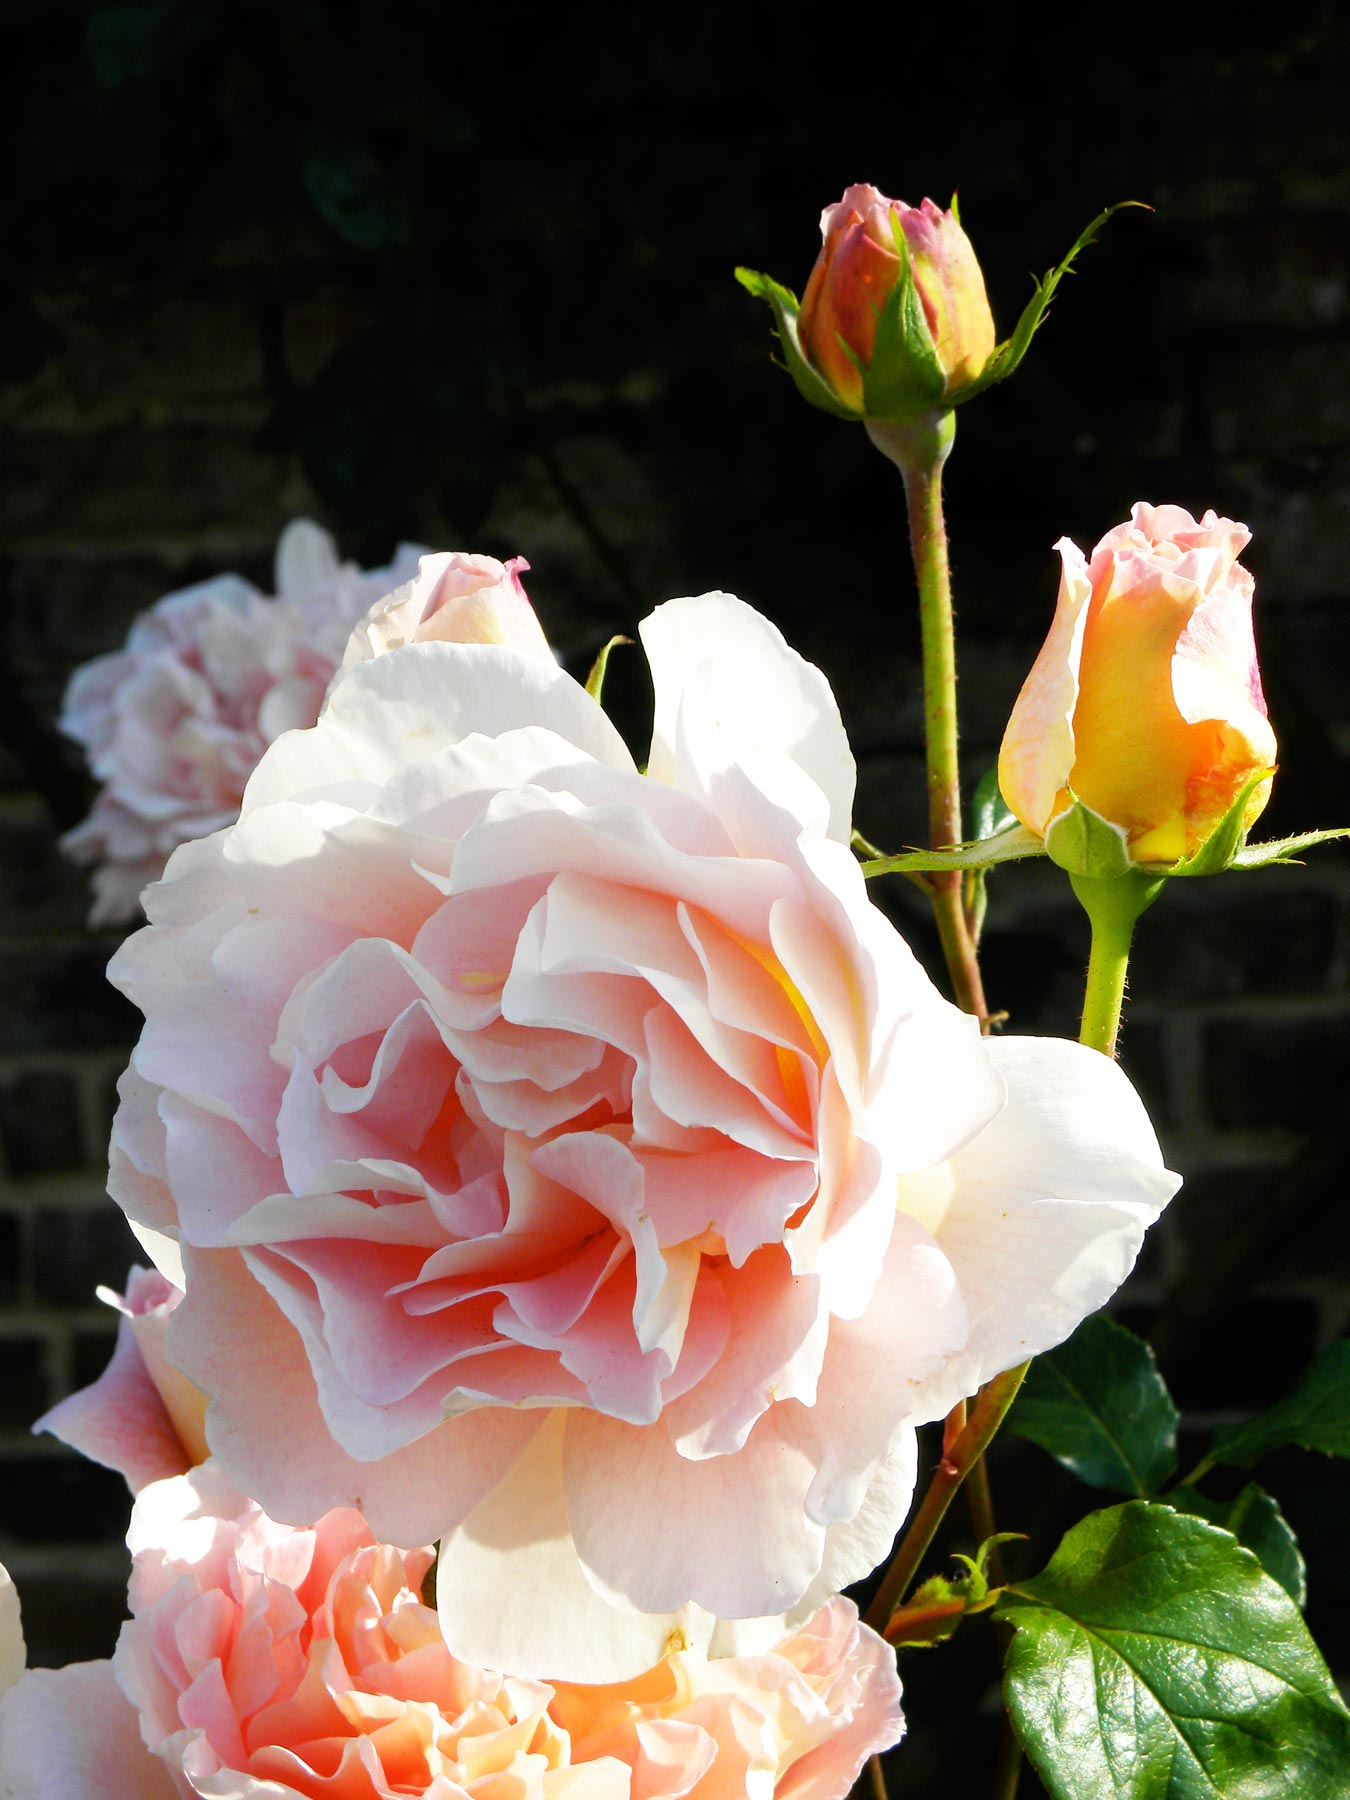 Rose Abraham Darby